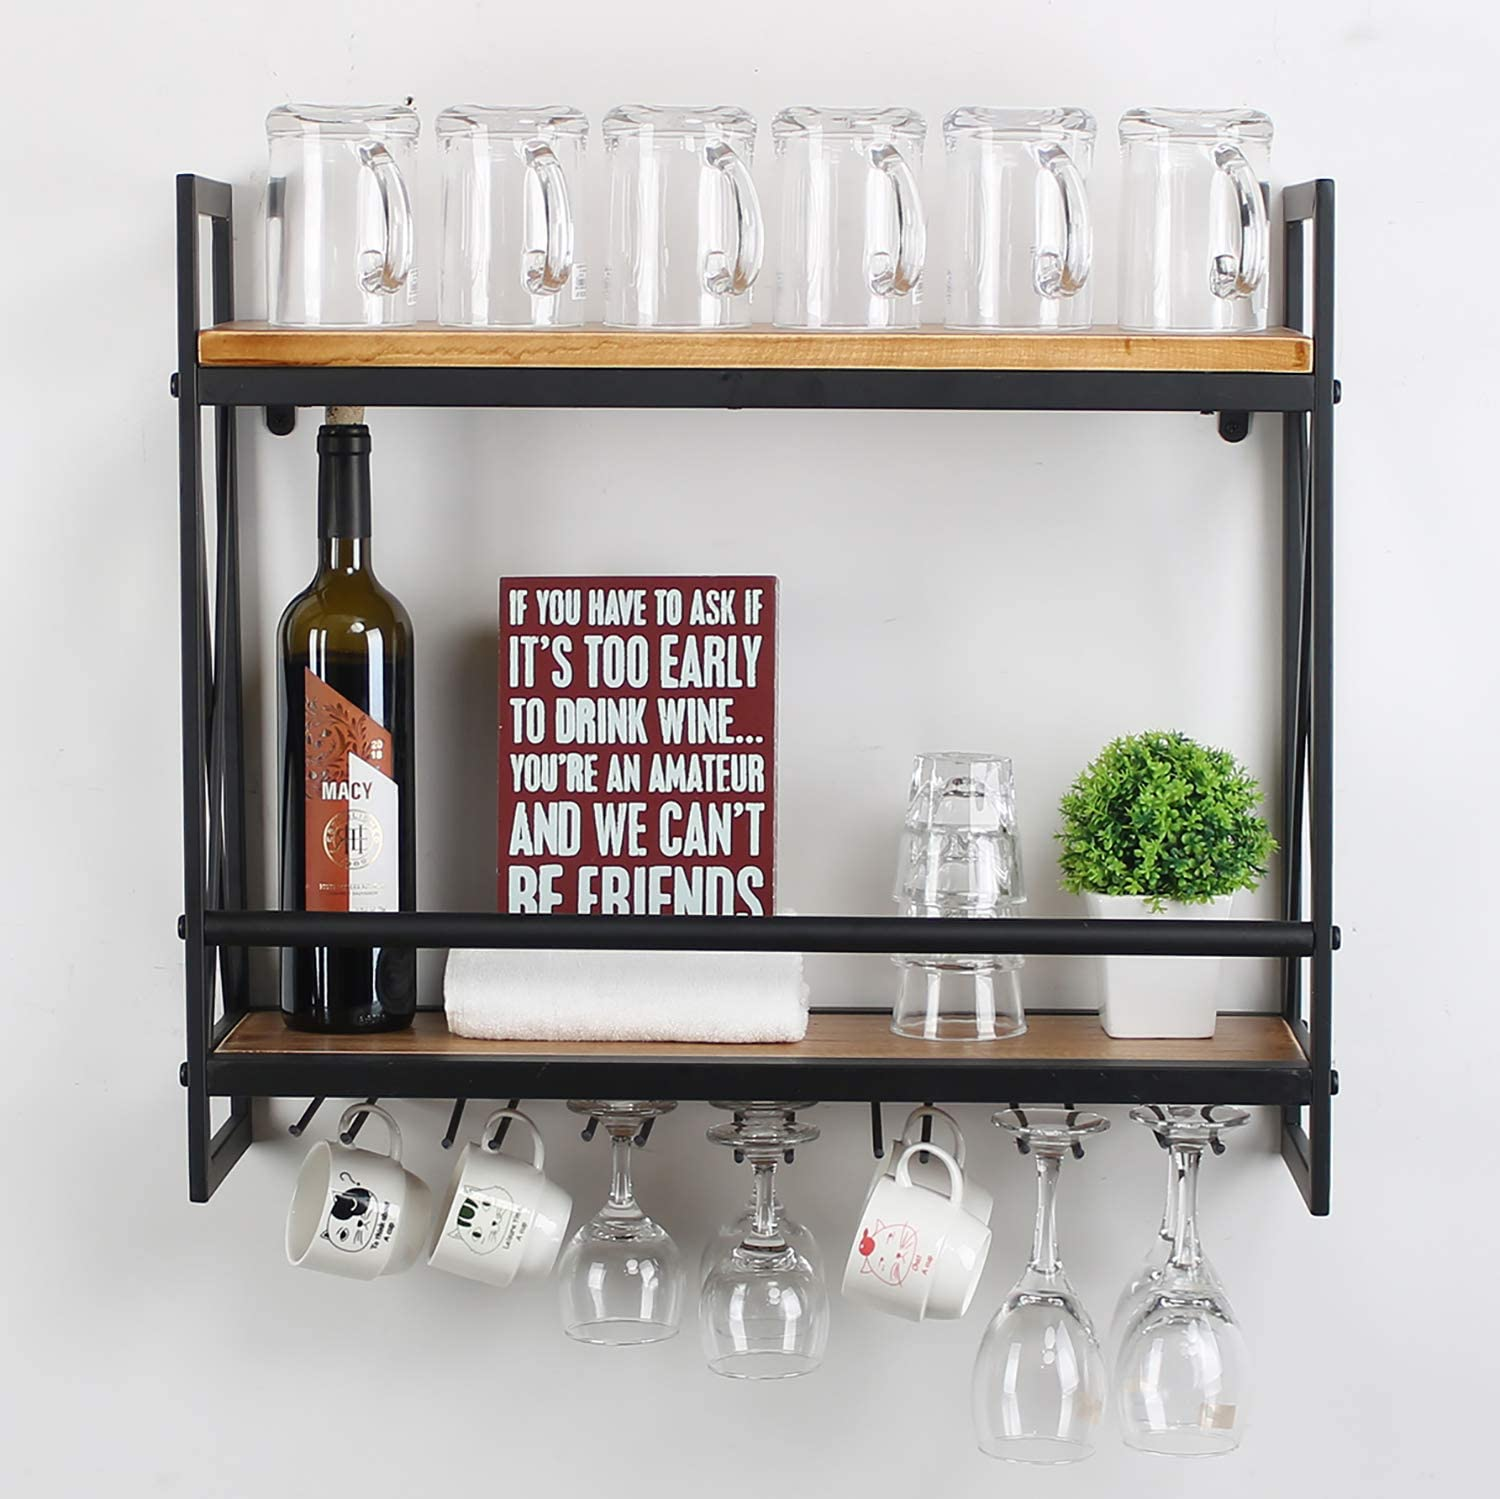 Amazon Com Mbqq Rustic Wall Mounted Wine Racks With 6 Stem Glass Holder 23 6in Industrial Metal Hanging Wine Rack 2 Tiers Wood Shelf Floating Shelves Home Room Living Room Kitchen Decor Display Rack Home Kitchen